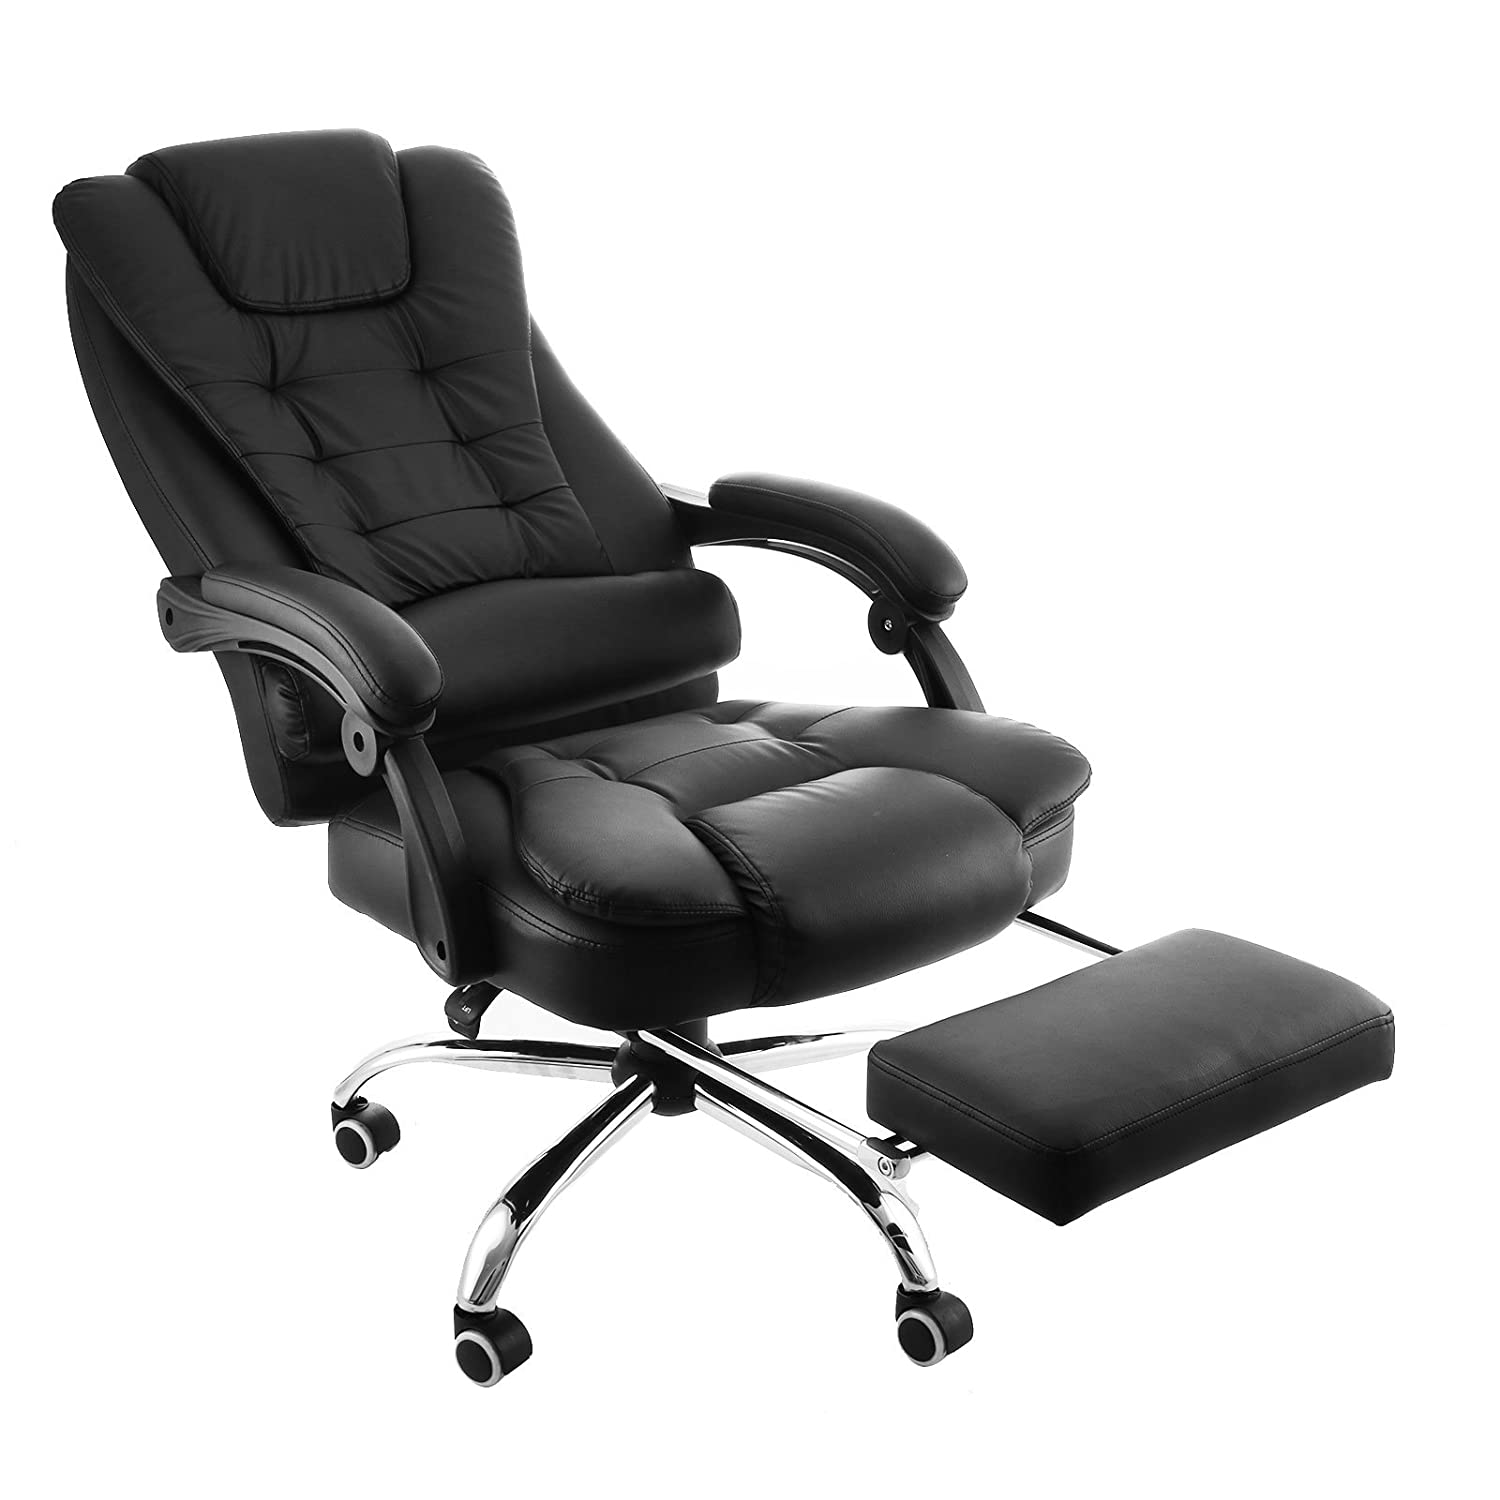 Enjoyable Happybuy Executive Swivel Office Chair With Footrest Pu Leather Ergonomic Office Reclining Chair Adjustable High Back Office Armchair Computer Napping Ibusinesslaw Wood Chair Design Ideas Ibusinesslaworg